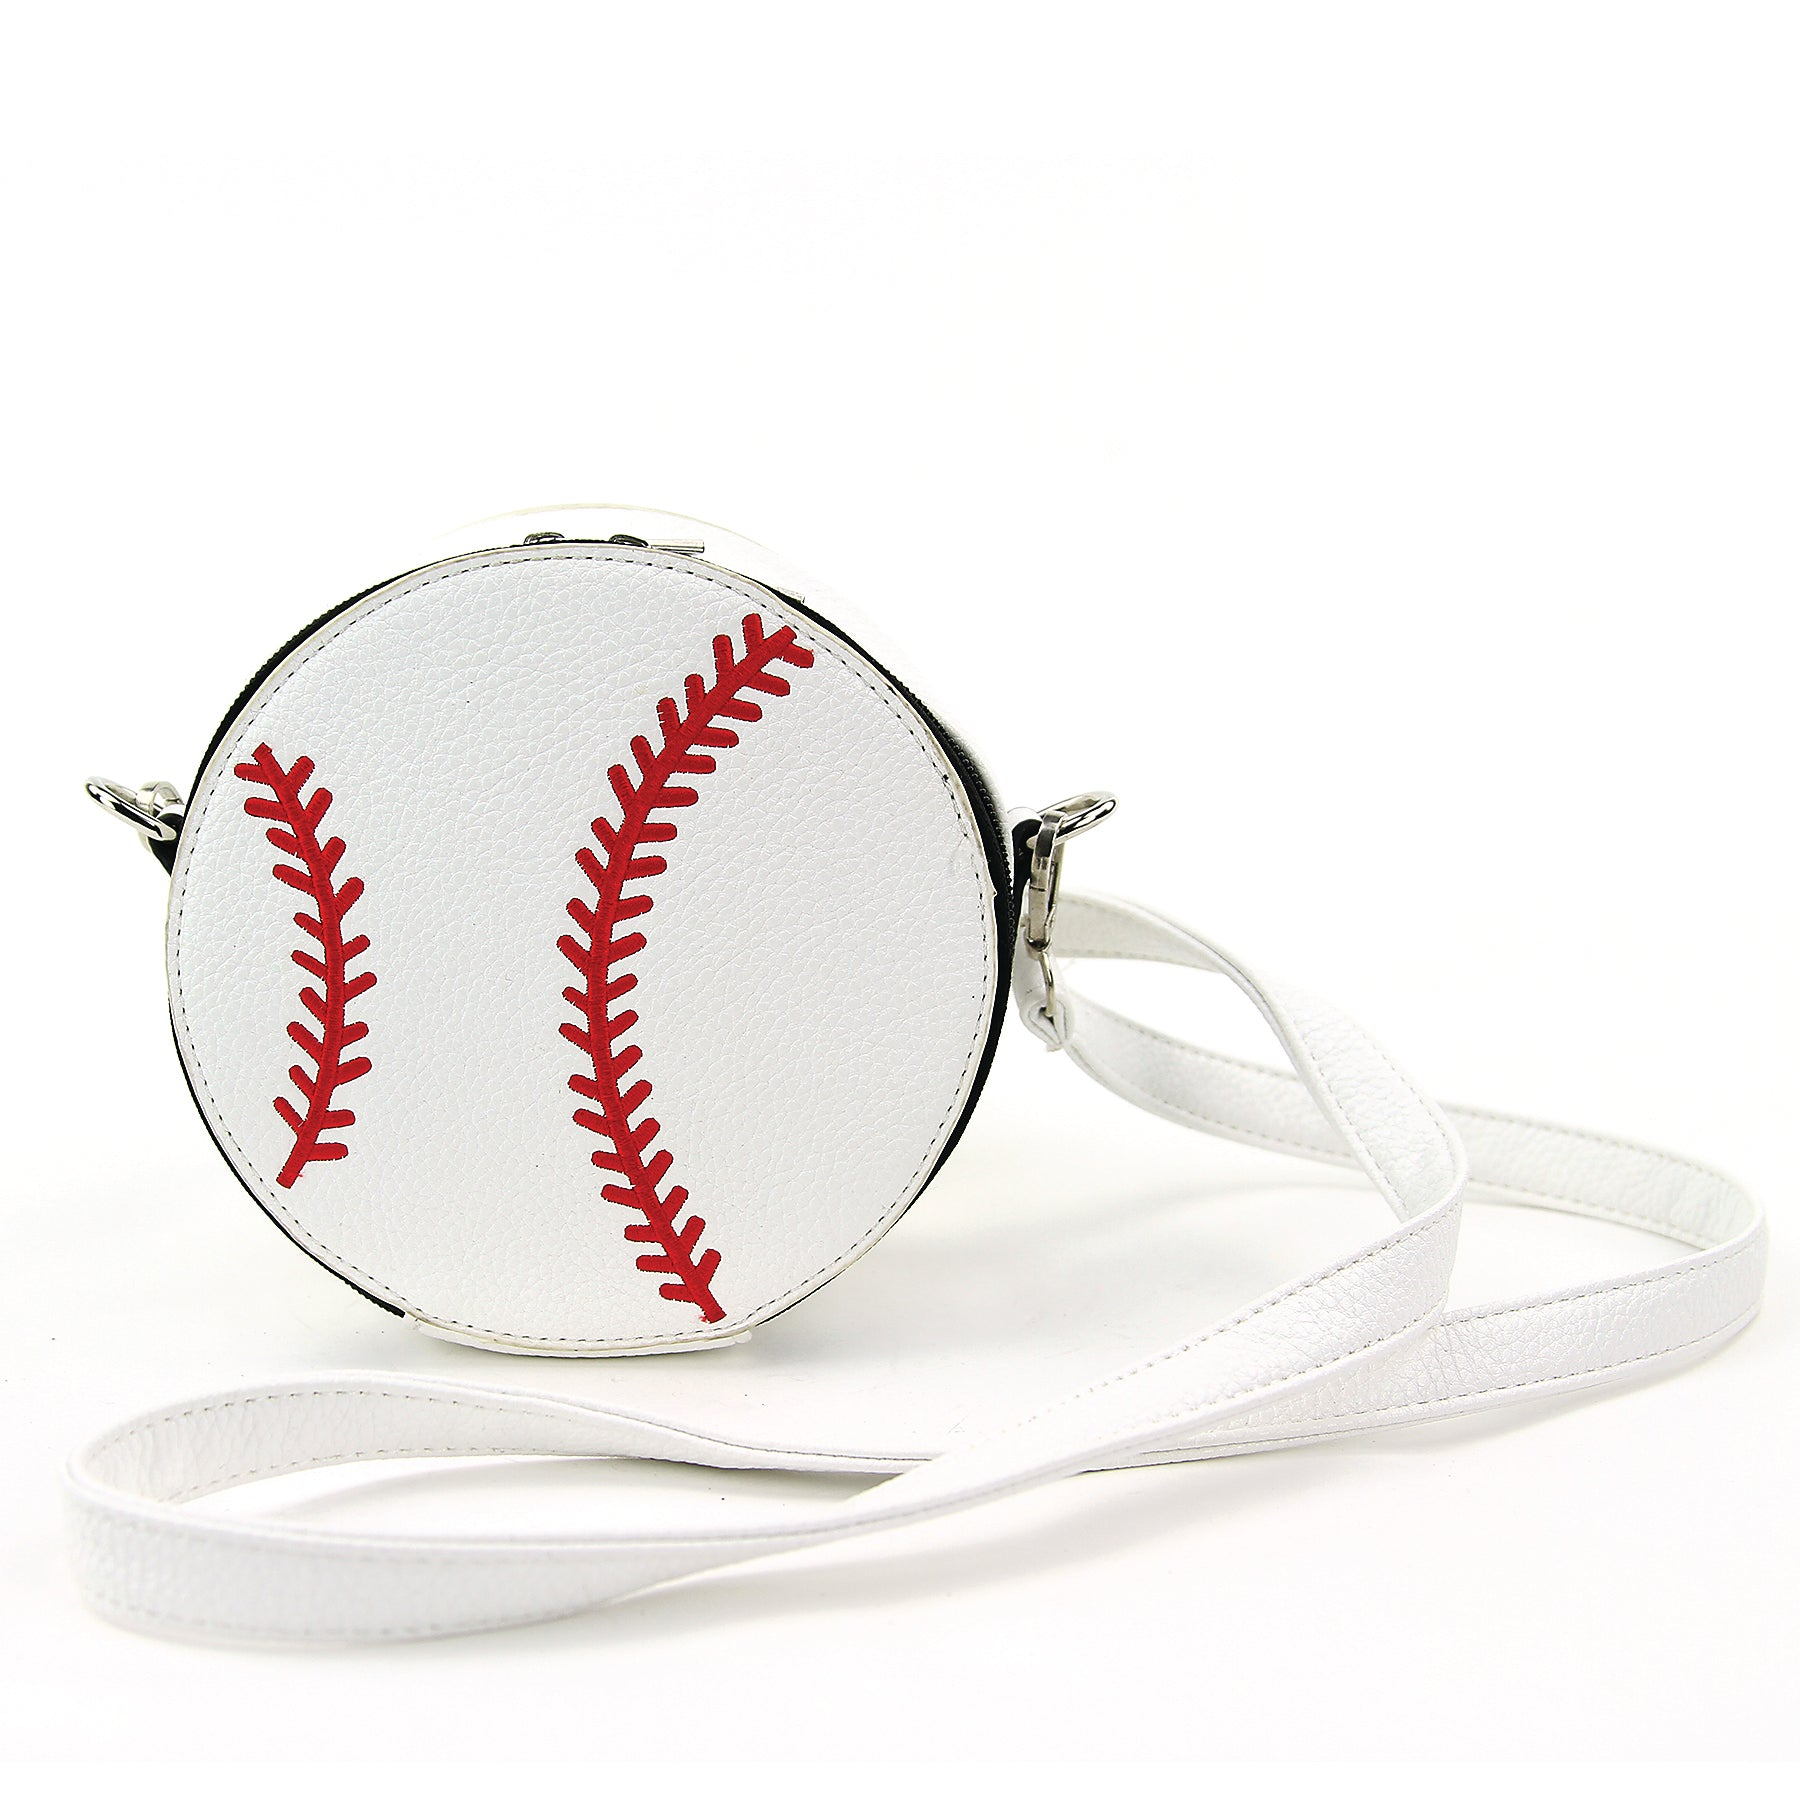 Baseball Crossbody Bag in Vinyl Material front view